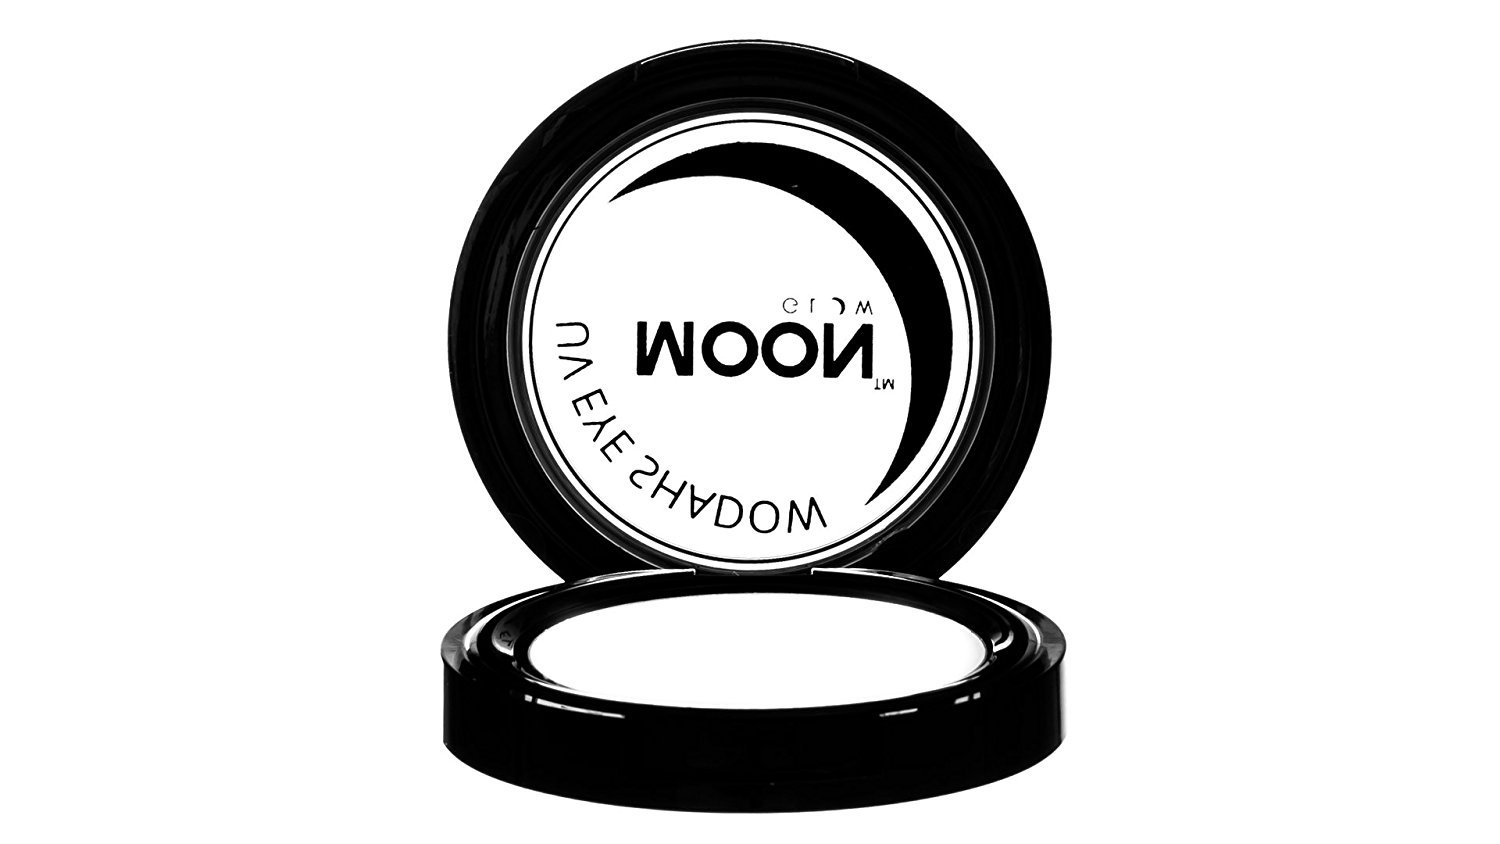 Moon Glow - Blacklight Neon Eye Shadow 0.12oz White – Glows brightly under Blacklights / UV Lighting!